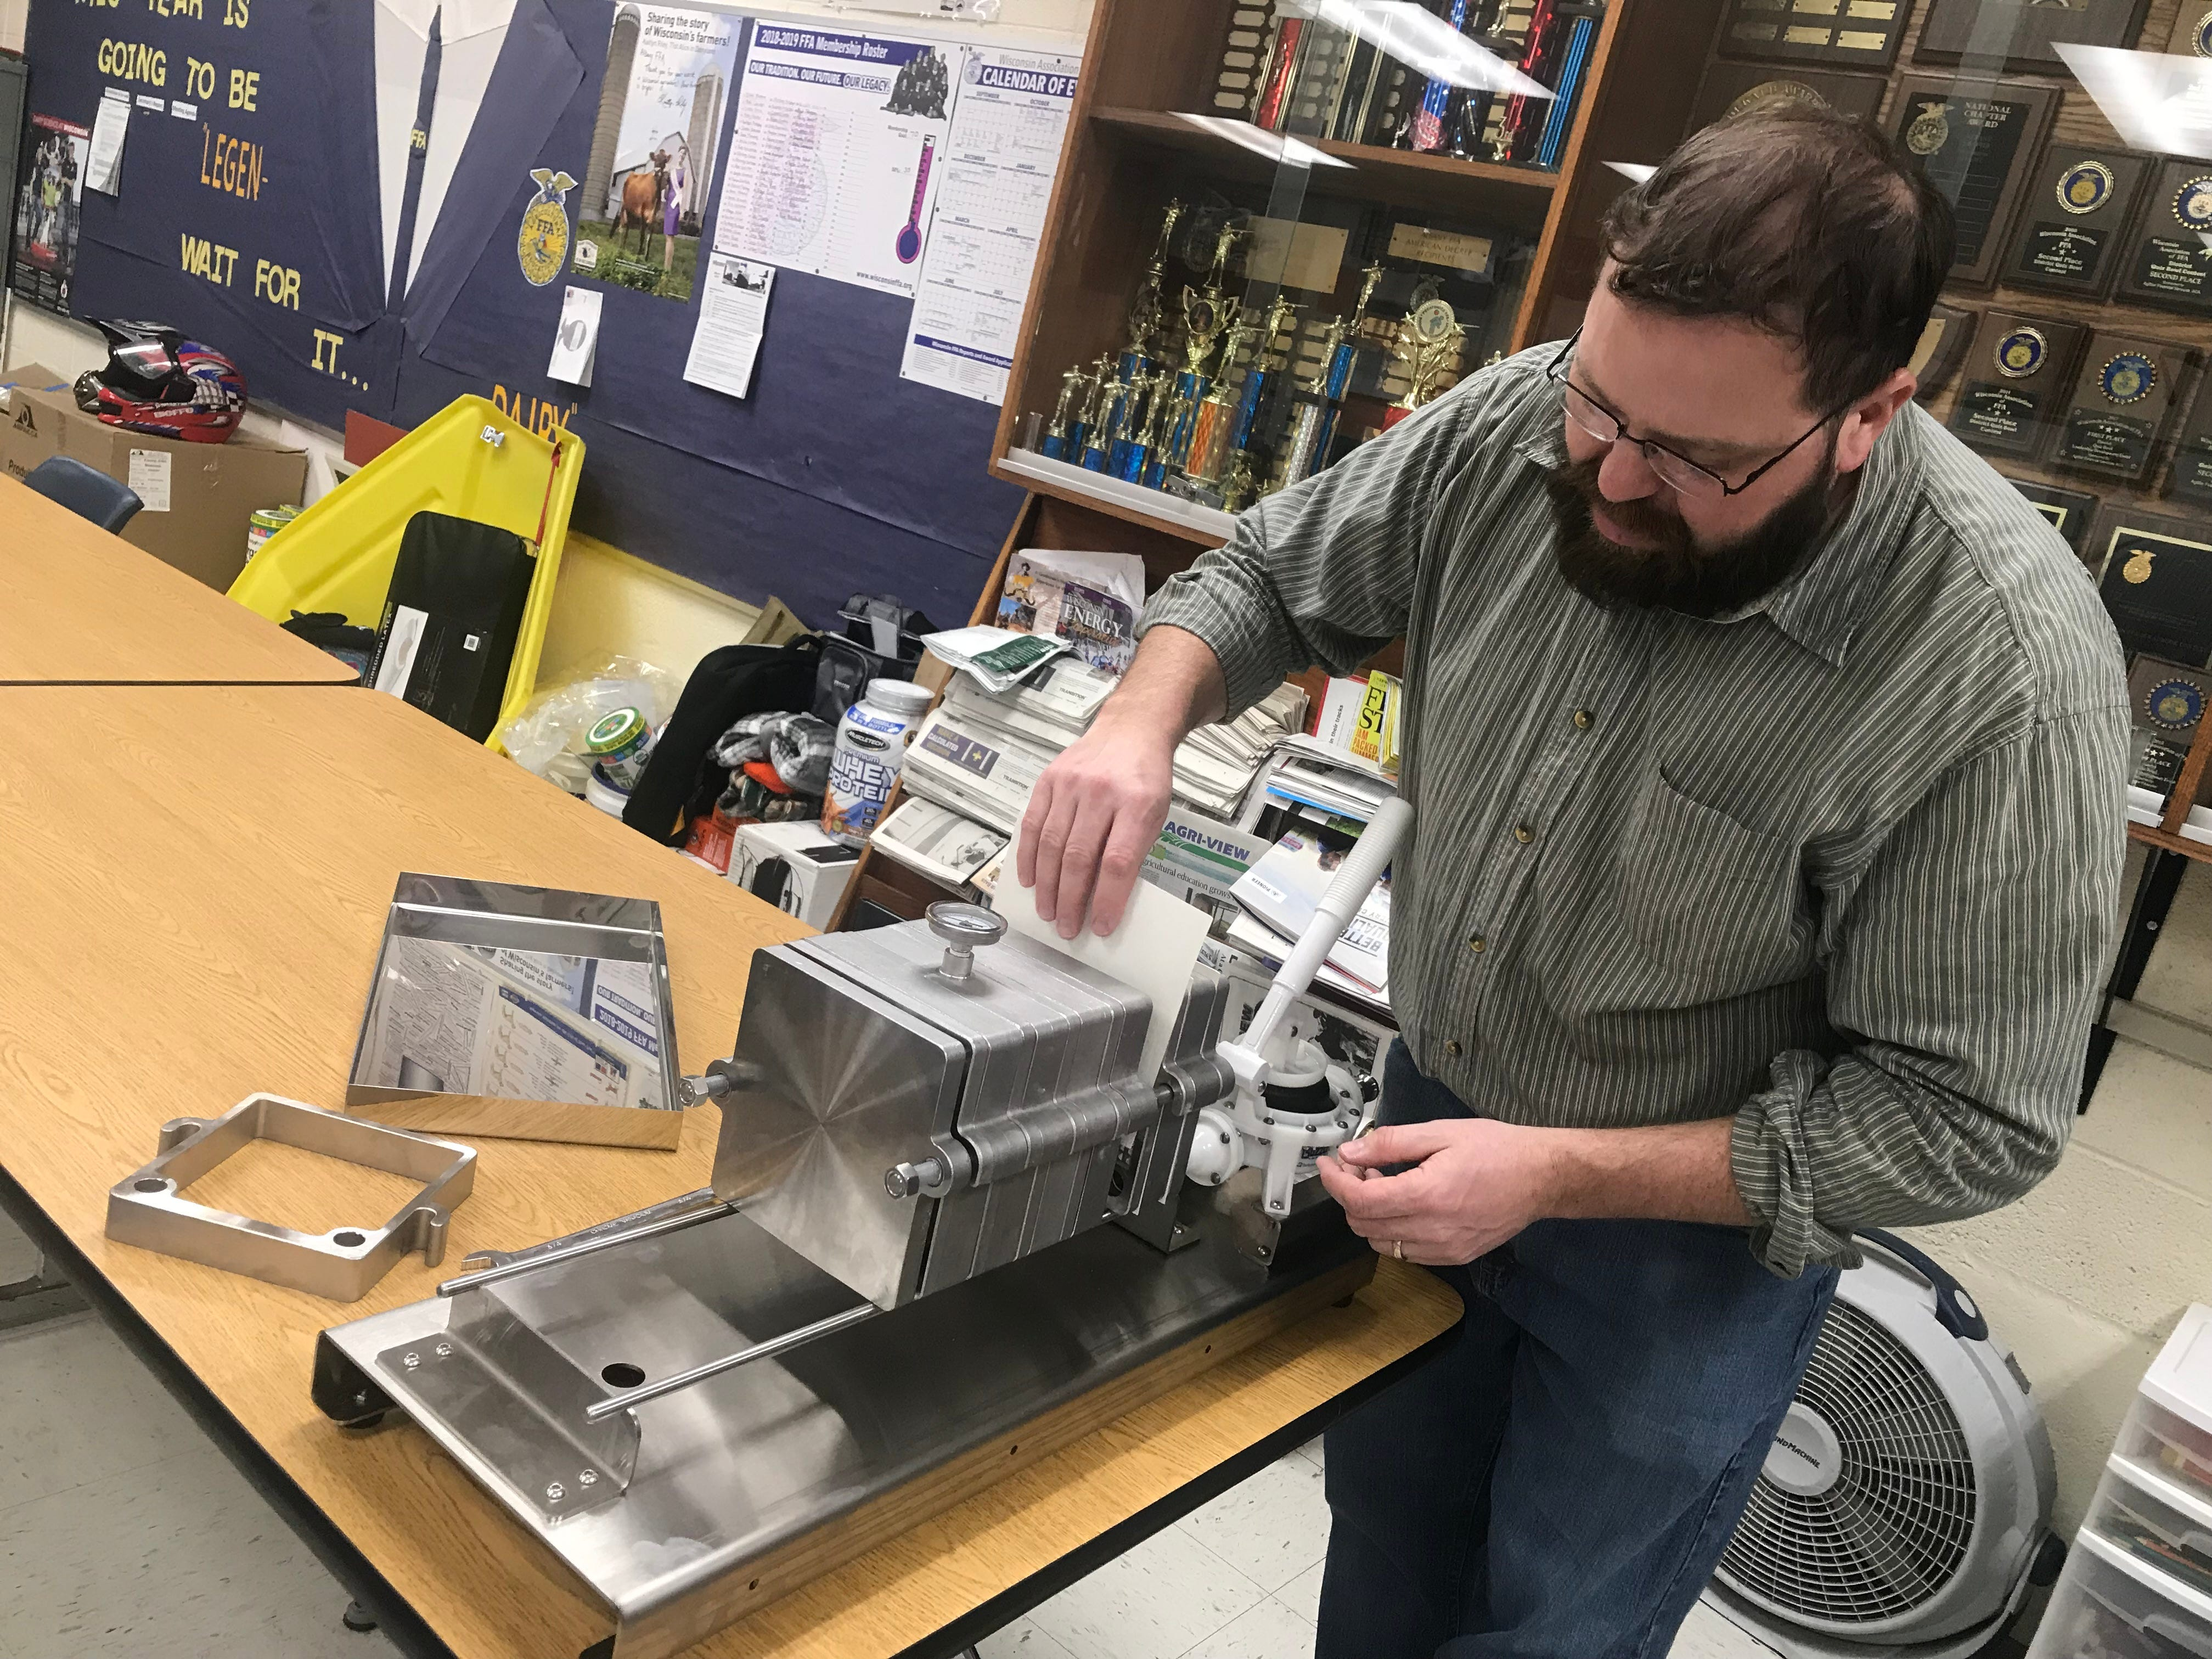 Agriculture Educator Jamie Rupp demonstrates a filter press for students in Albany.